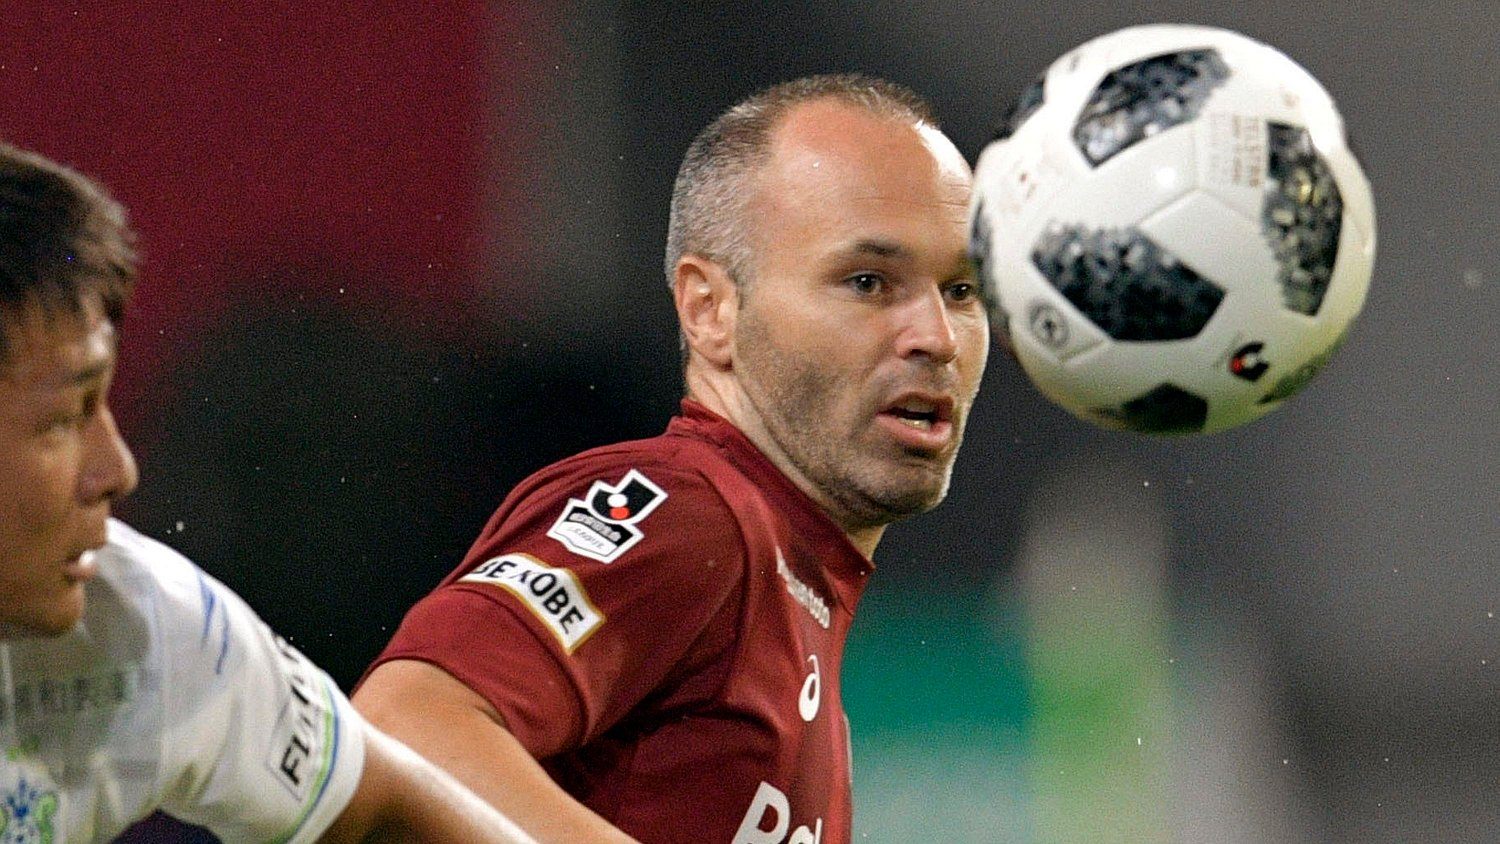 FILE - In this July 22, 2018, file photo, Vissel Kobe's Andres Iniesta, right, of Spain controls the ball during their J-League soccer match against Shonan Bellmare in Kobe, western Japan. Iniesta is confident he can help his struggling Japanese team turn things around after a disappointing start to the season.